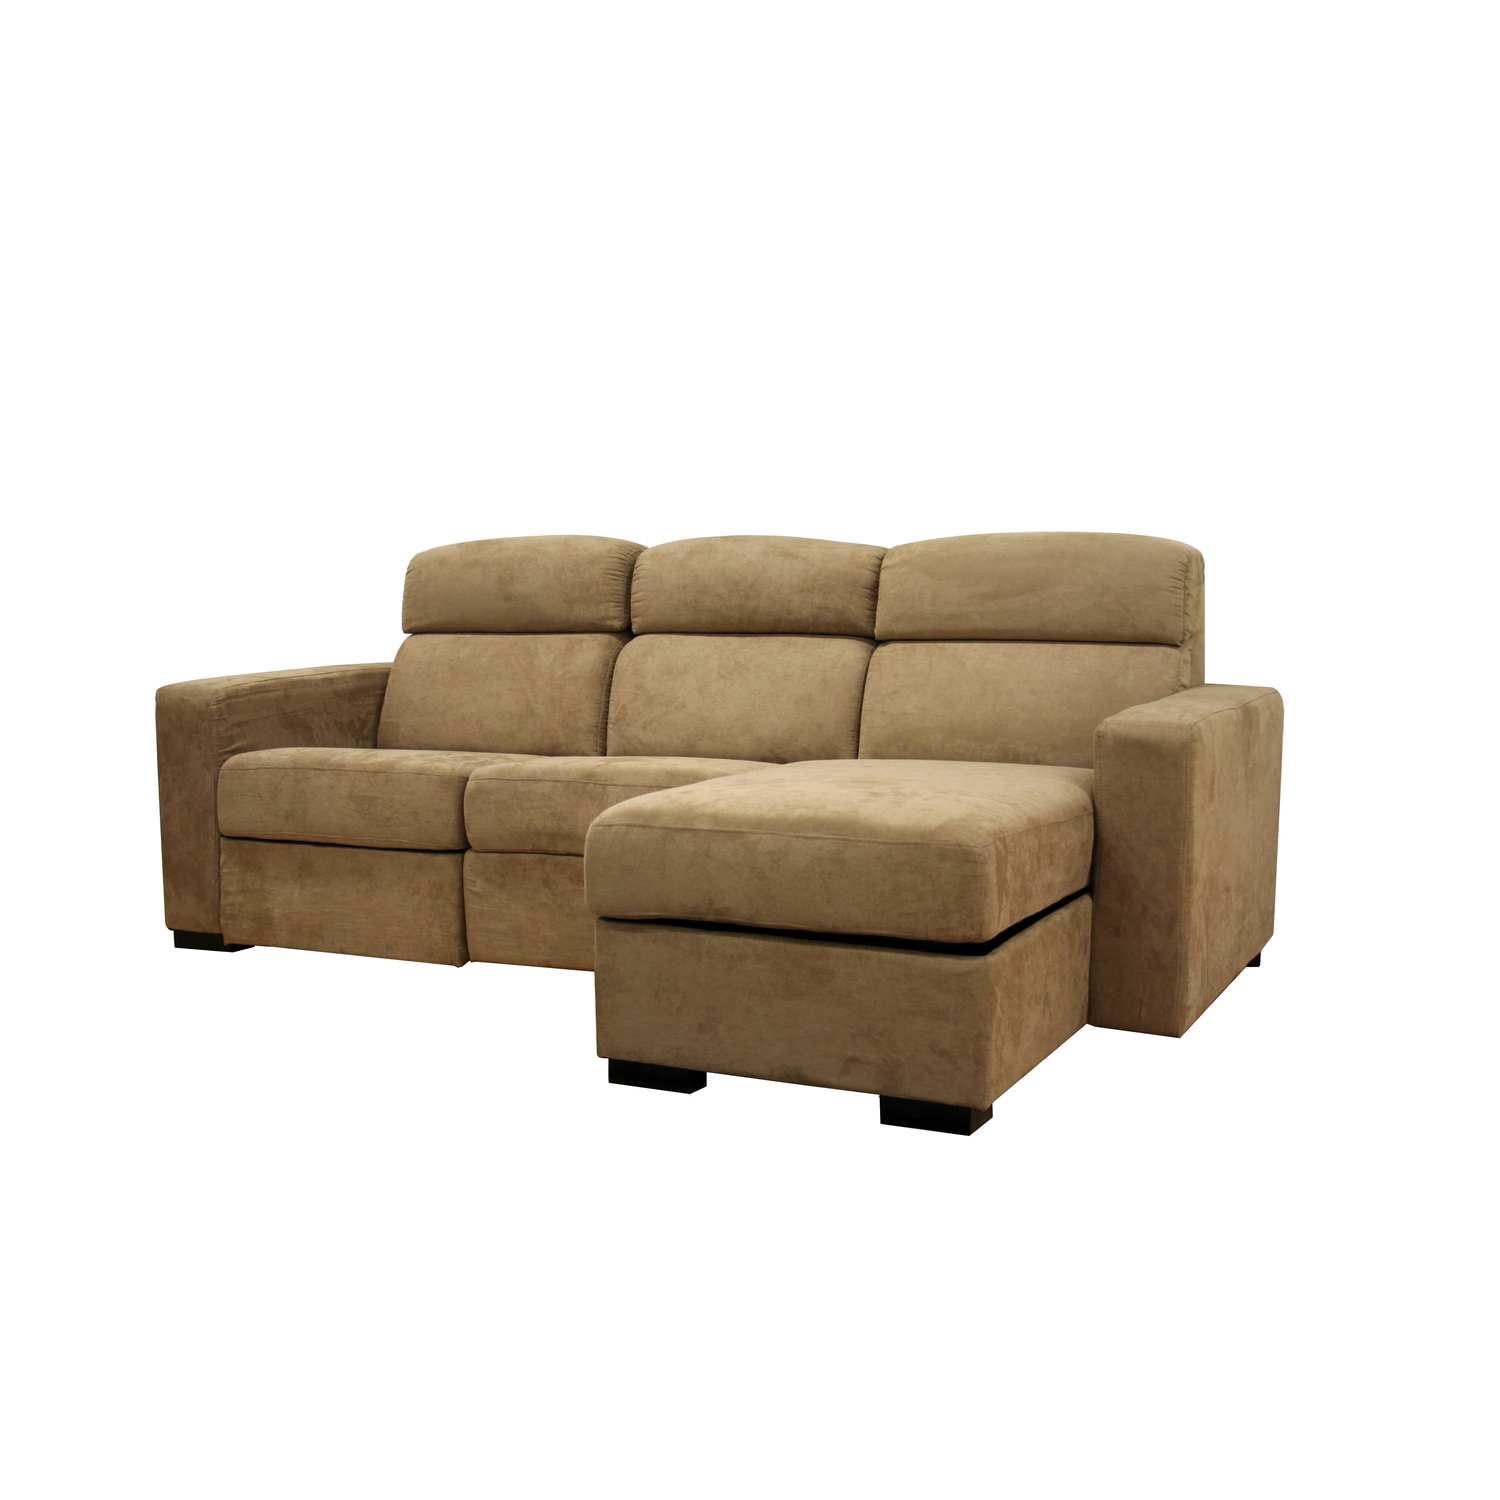 Microfiber sofa chaise sofa cool microfiber chaise sofa for Sofa interiors studio city